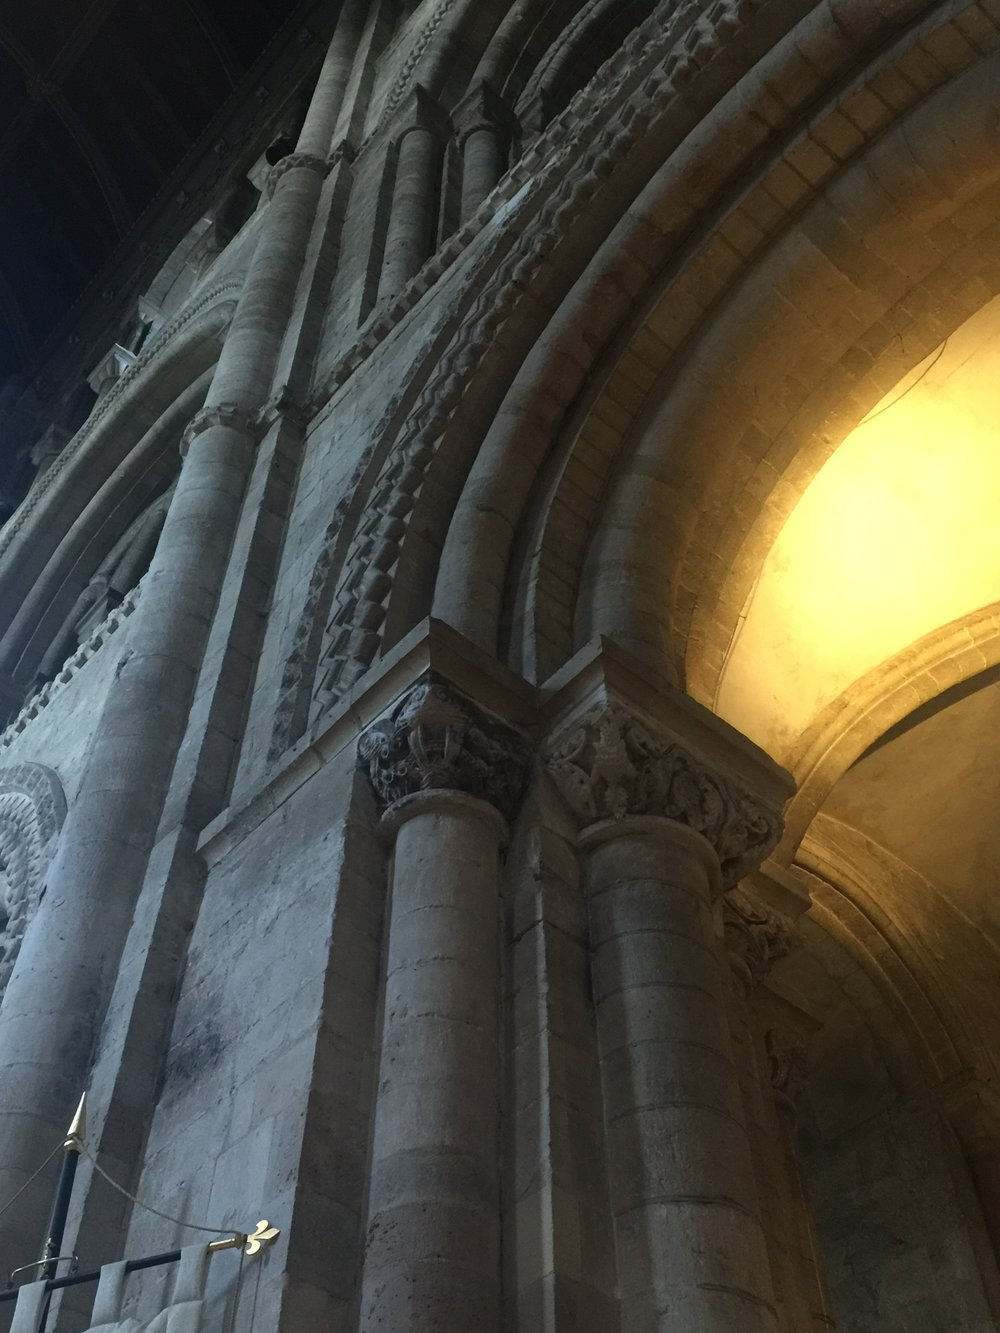 Capitals and archway